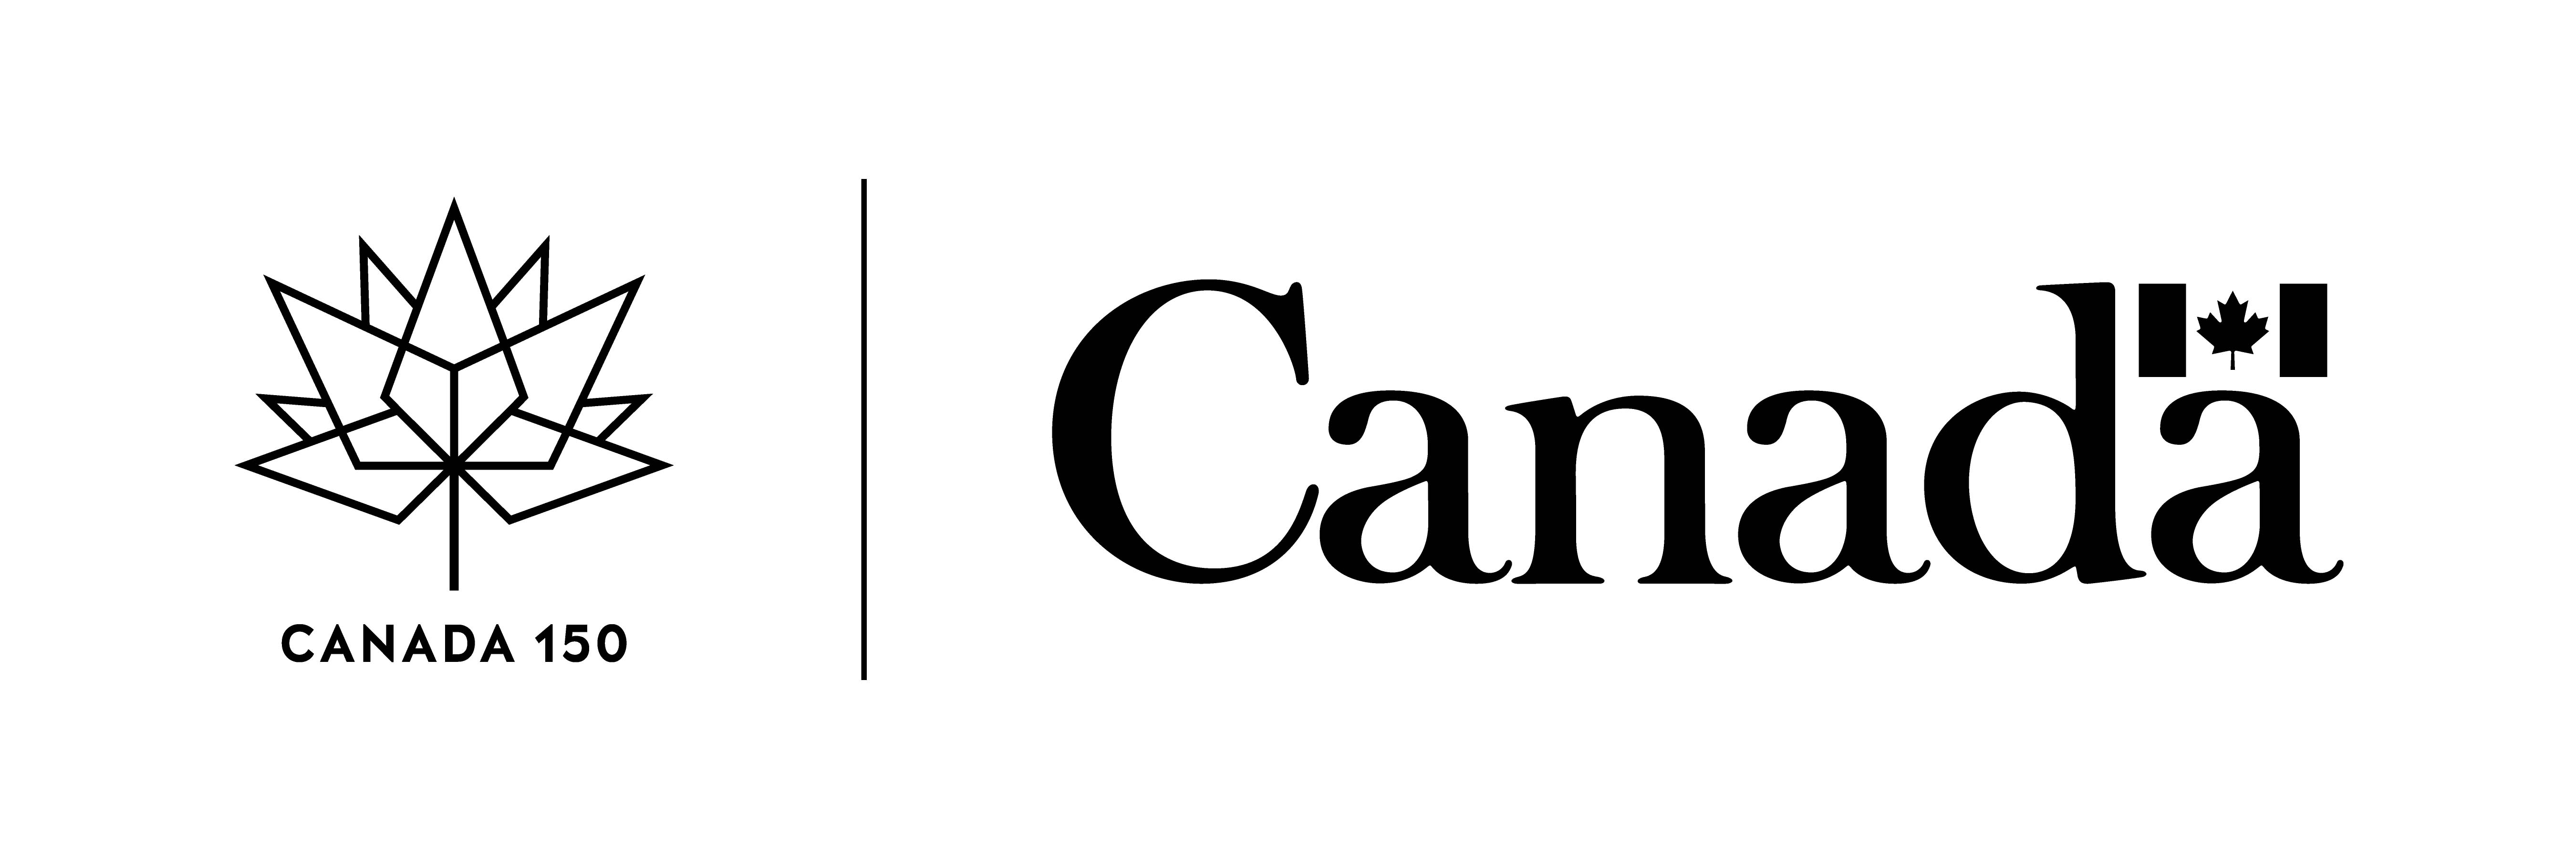 Canada 150 logo combined with Government of Canada logo